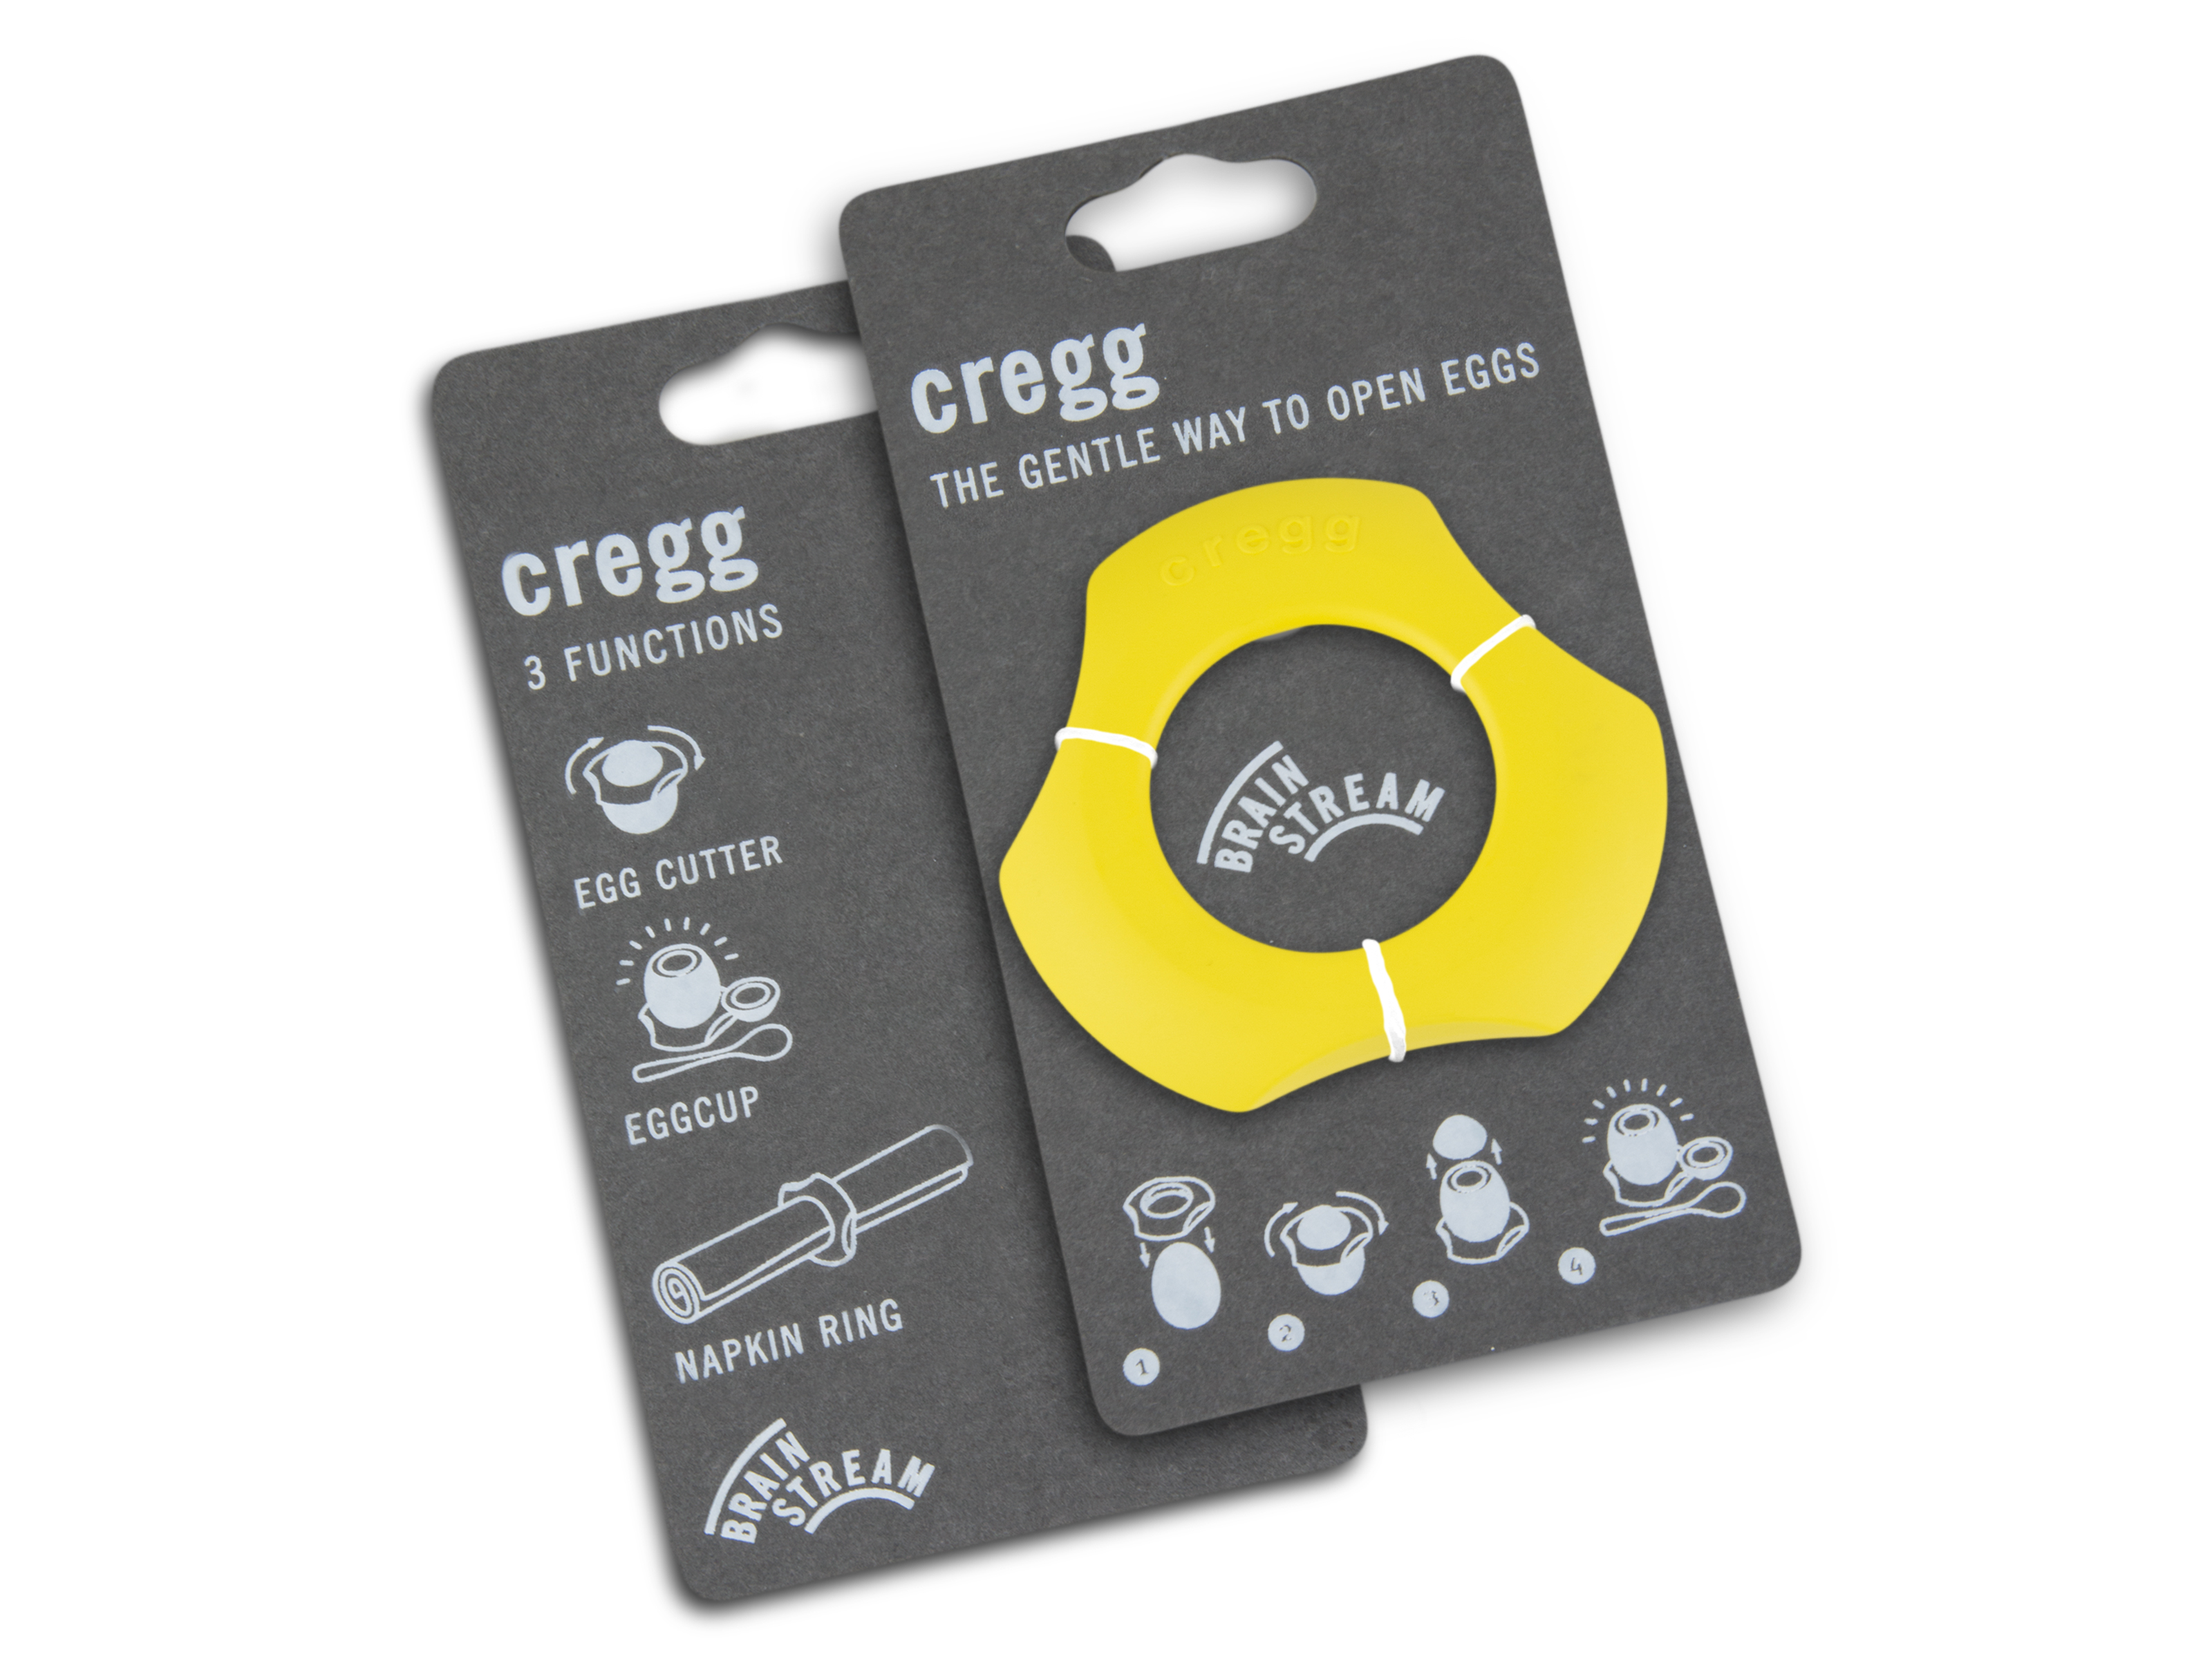 Cregg A001279 Single Pack & Eggshell Cutter Eggcup Napkin Ring, Yellow